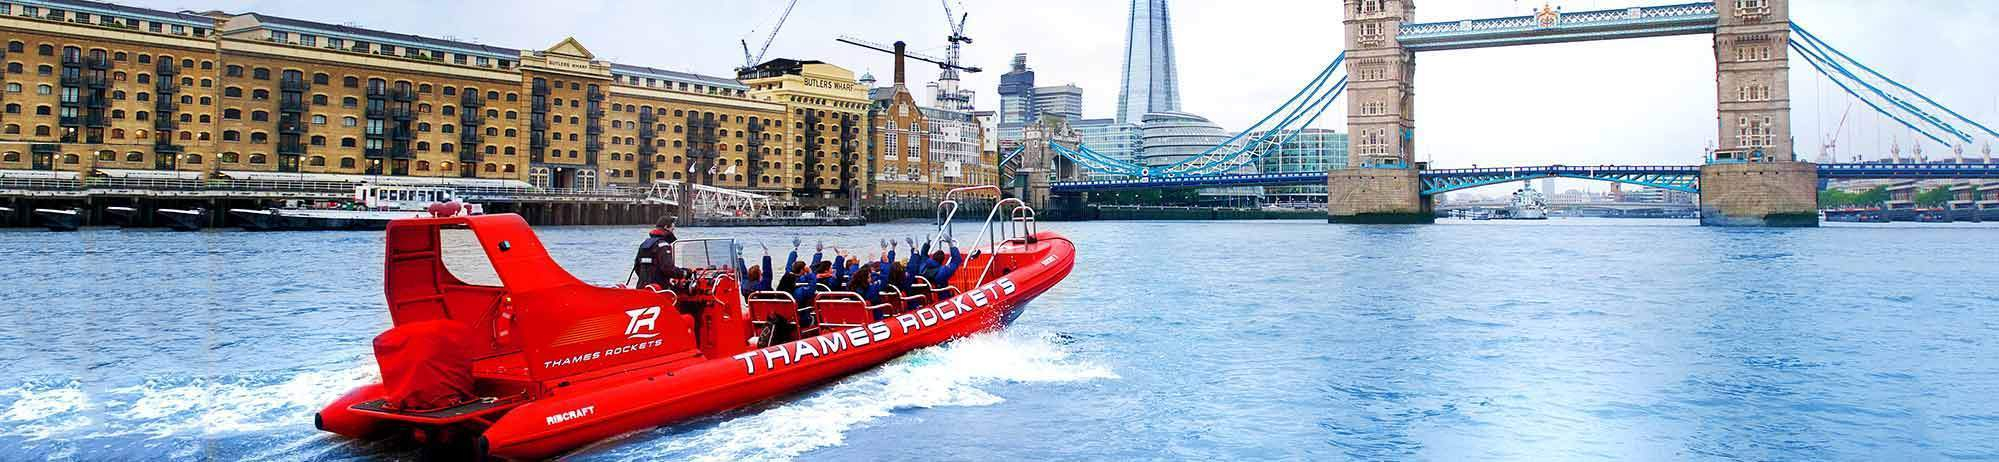 Experience Gifts FAMILY PASS MEMBERS ONLY Thames Rocket, the Award Winning Thames Speedboat Adventure, 15% off